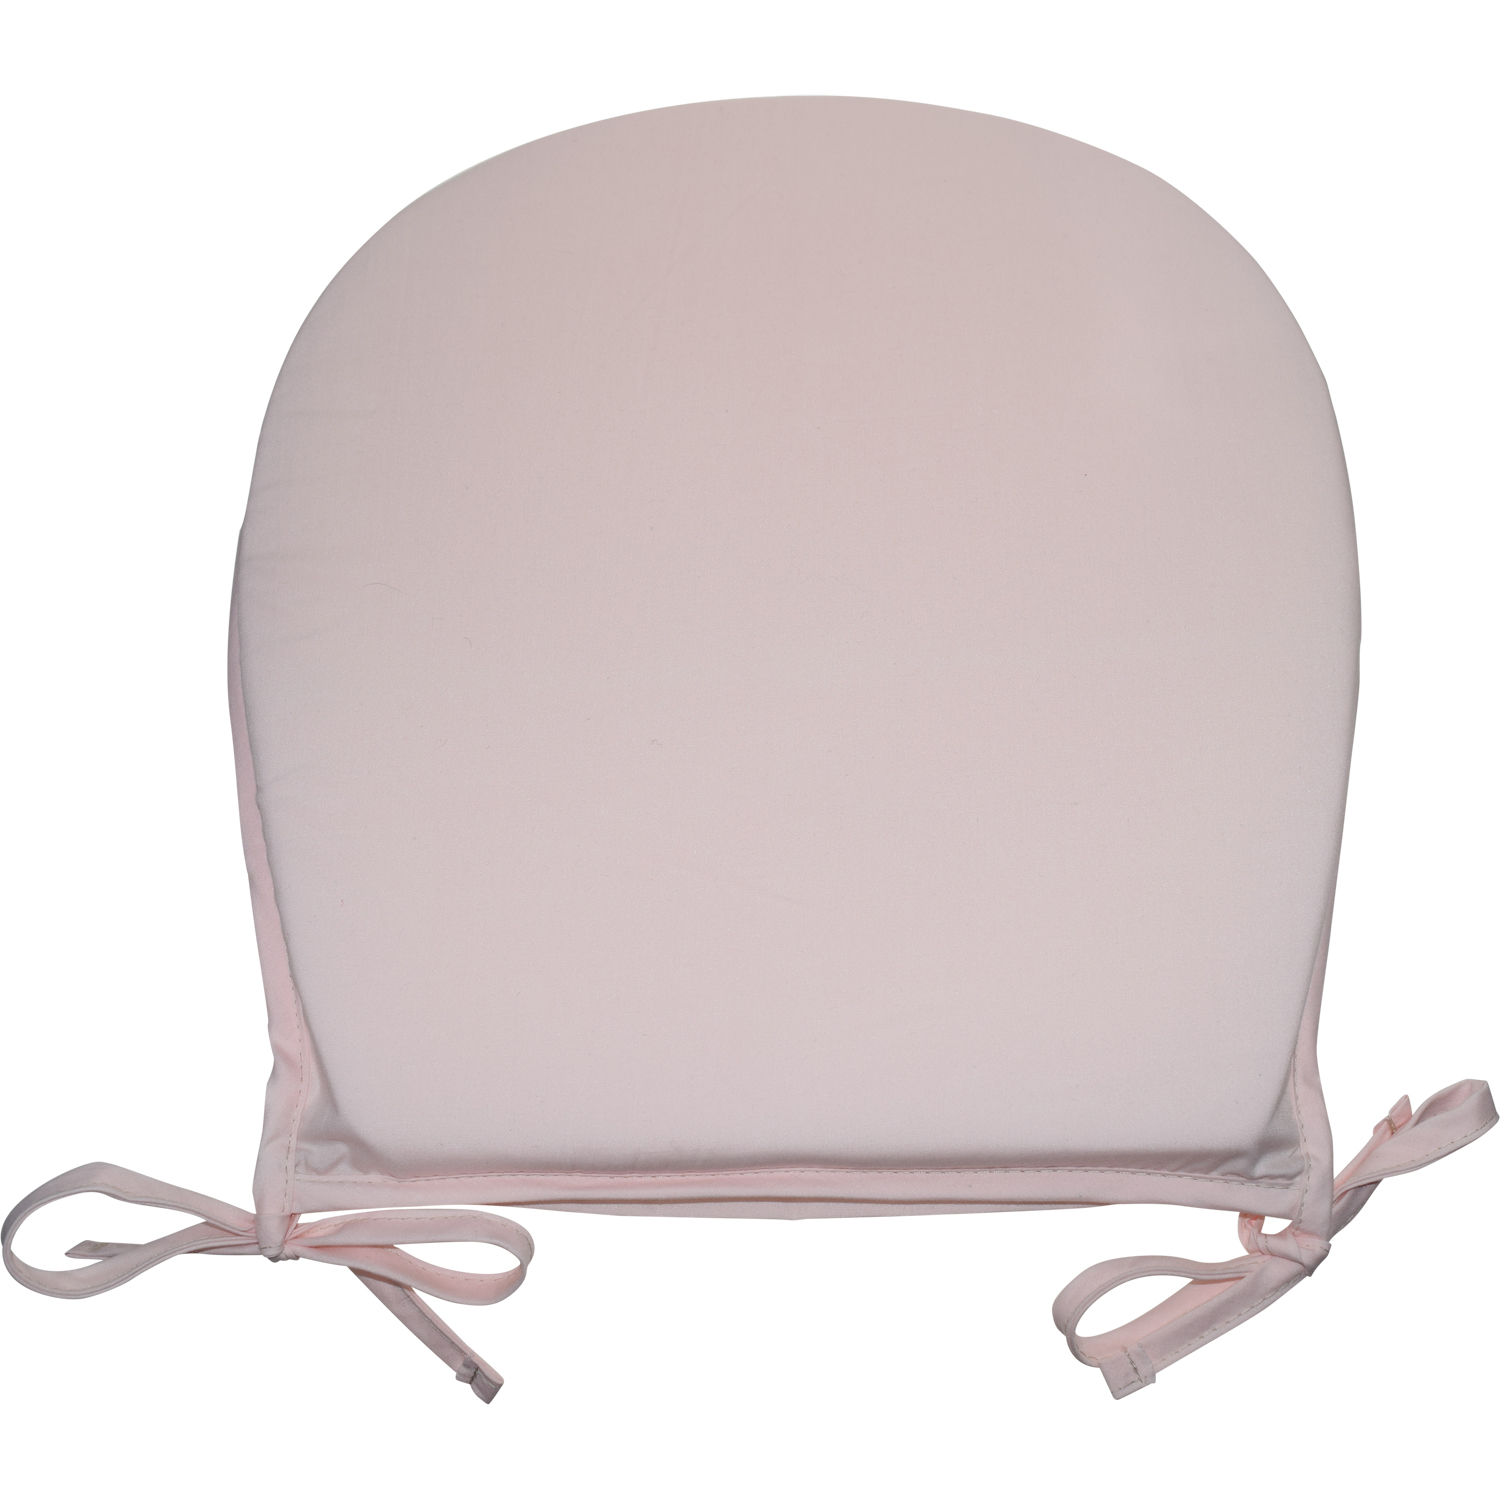 Round Kitchen Seat Pad Garden Furniture Dining Room Chair  : seat pad d round chair cushion pink from www.ebay.com.au size 1500 x 1500 jpeg 672kB